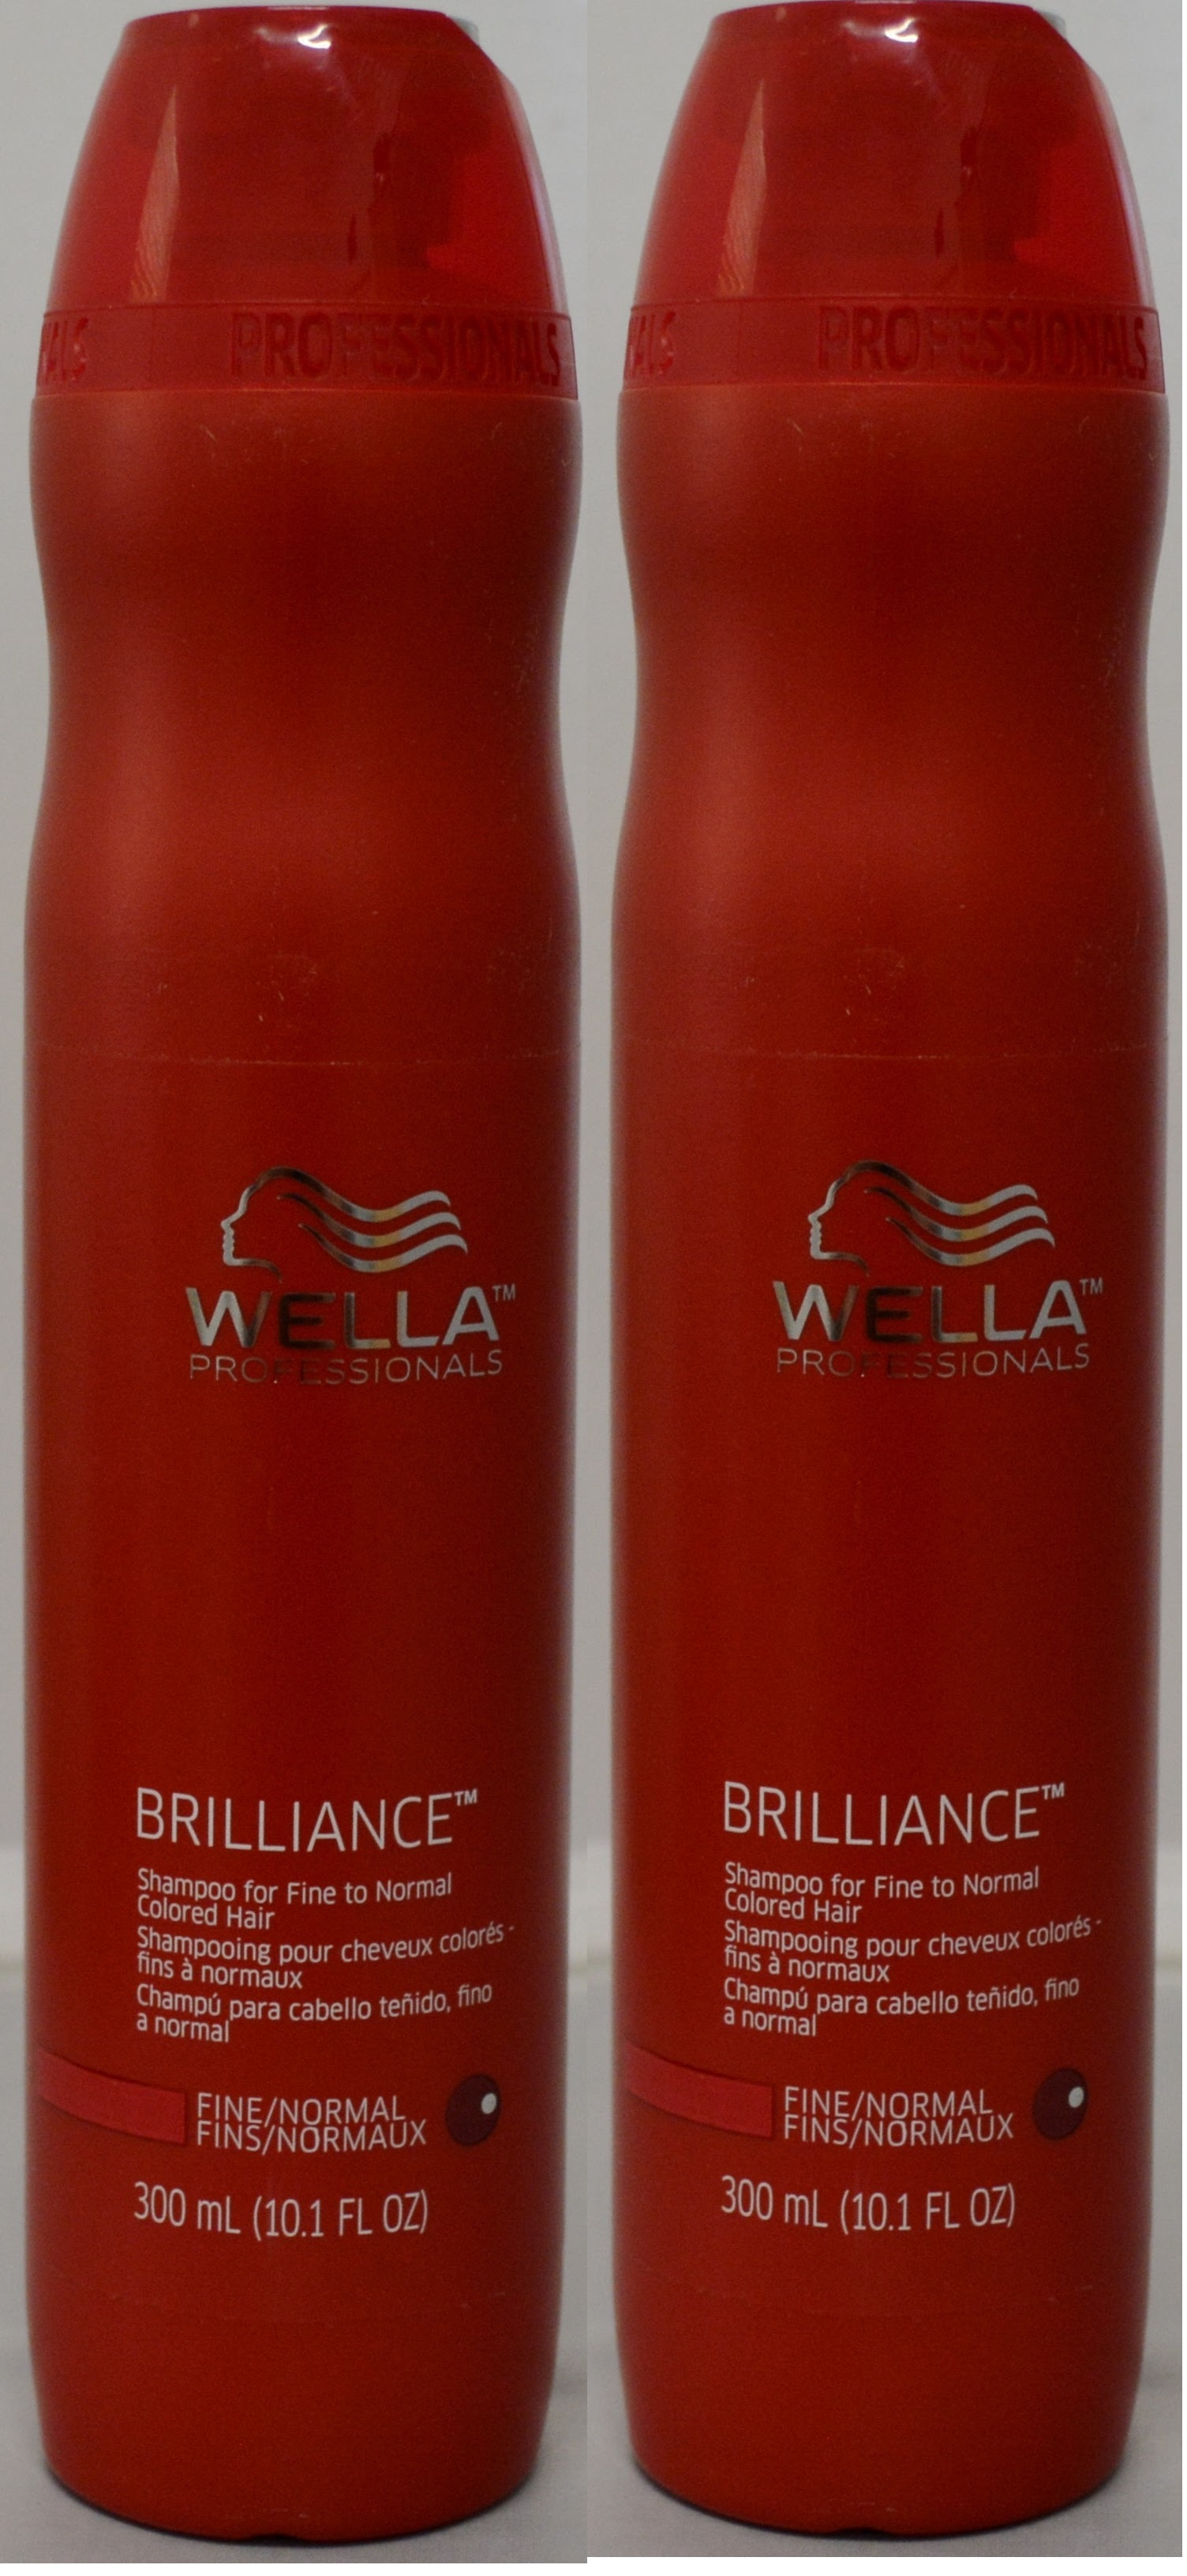 Wella Brilliance Shampoo For Fine To Normal Colored Hair